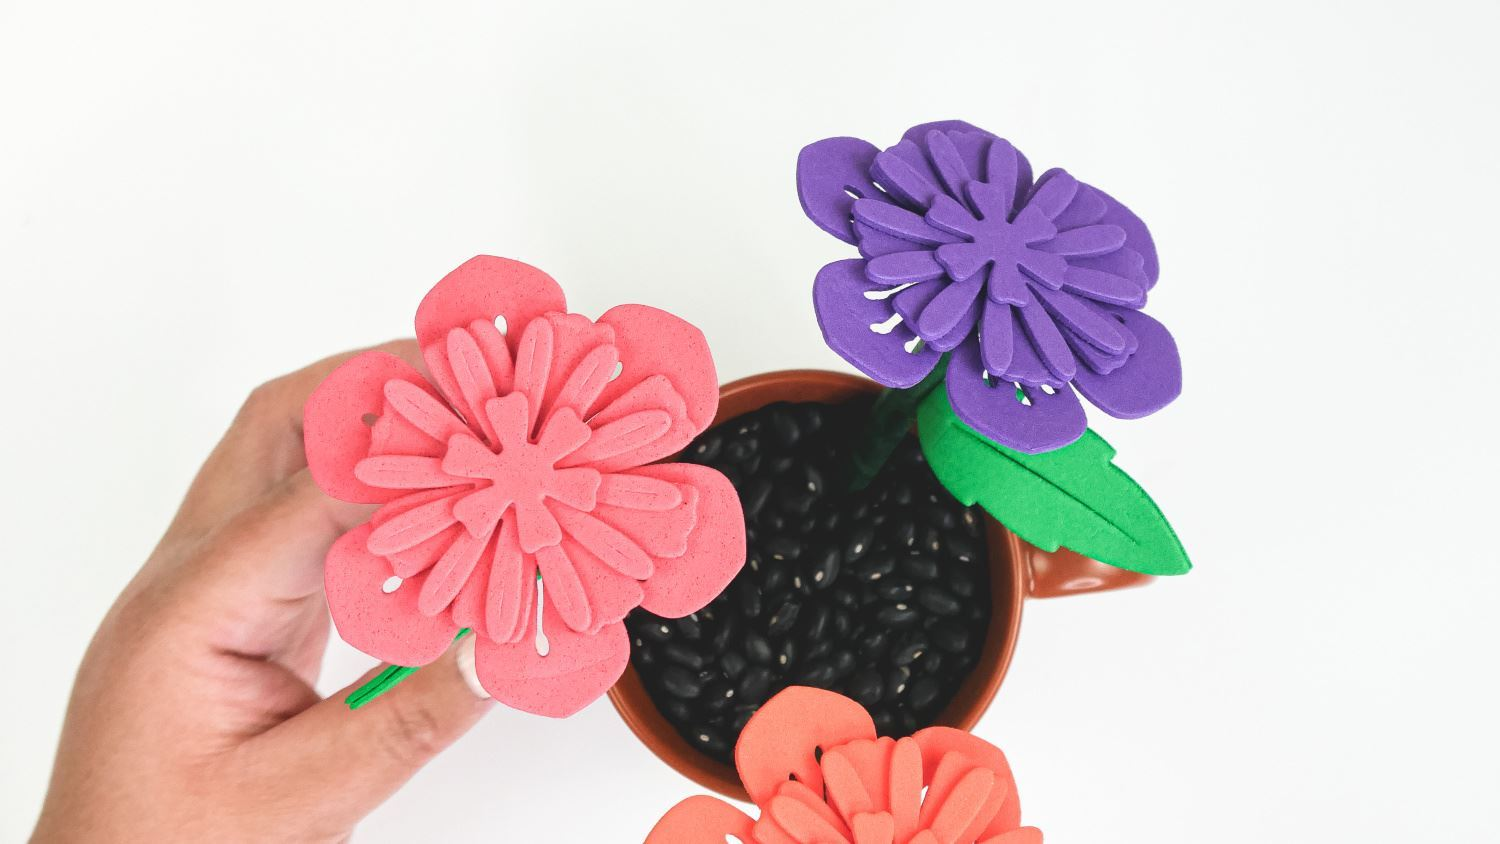 Arrange flower pens in pot